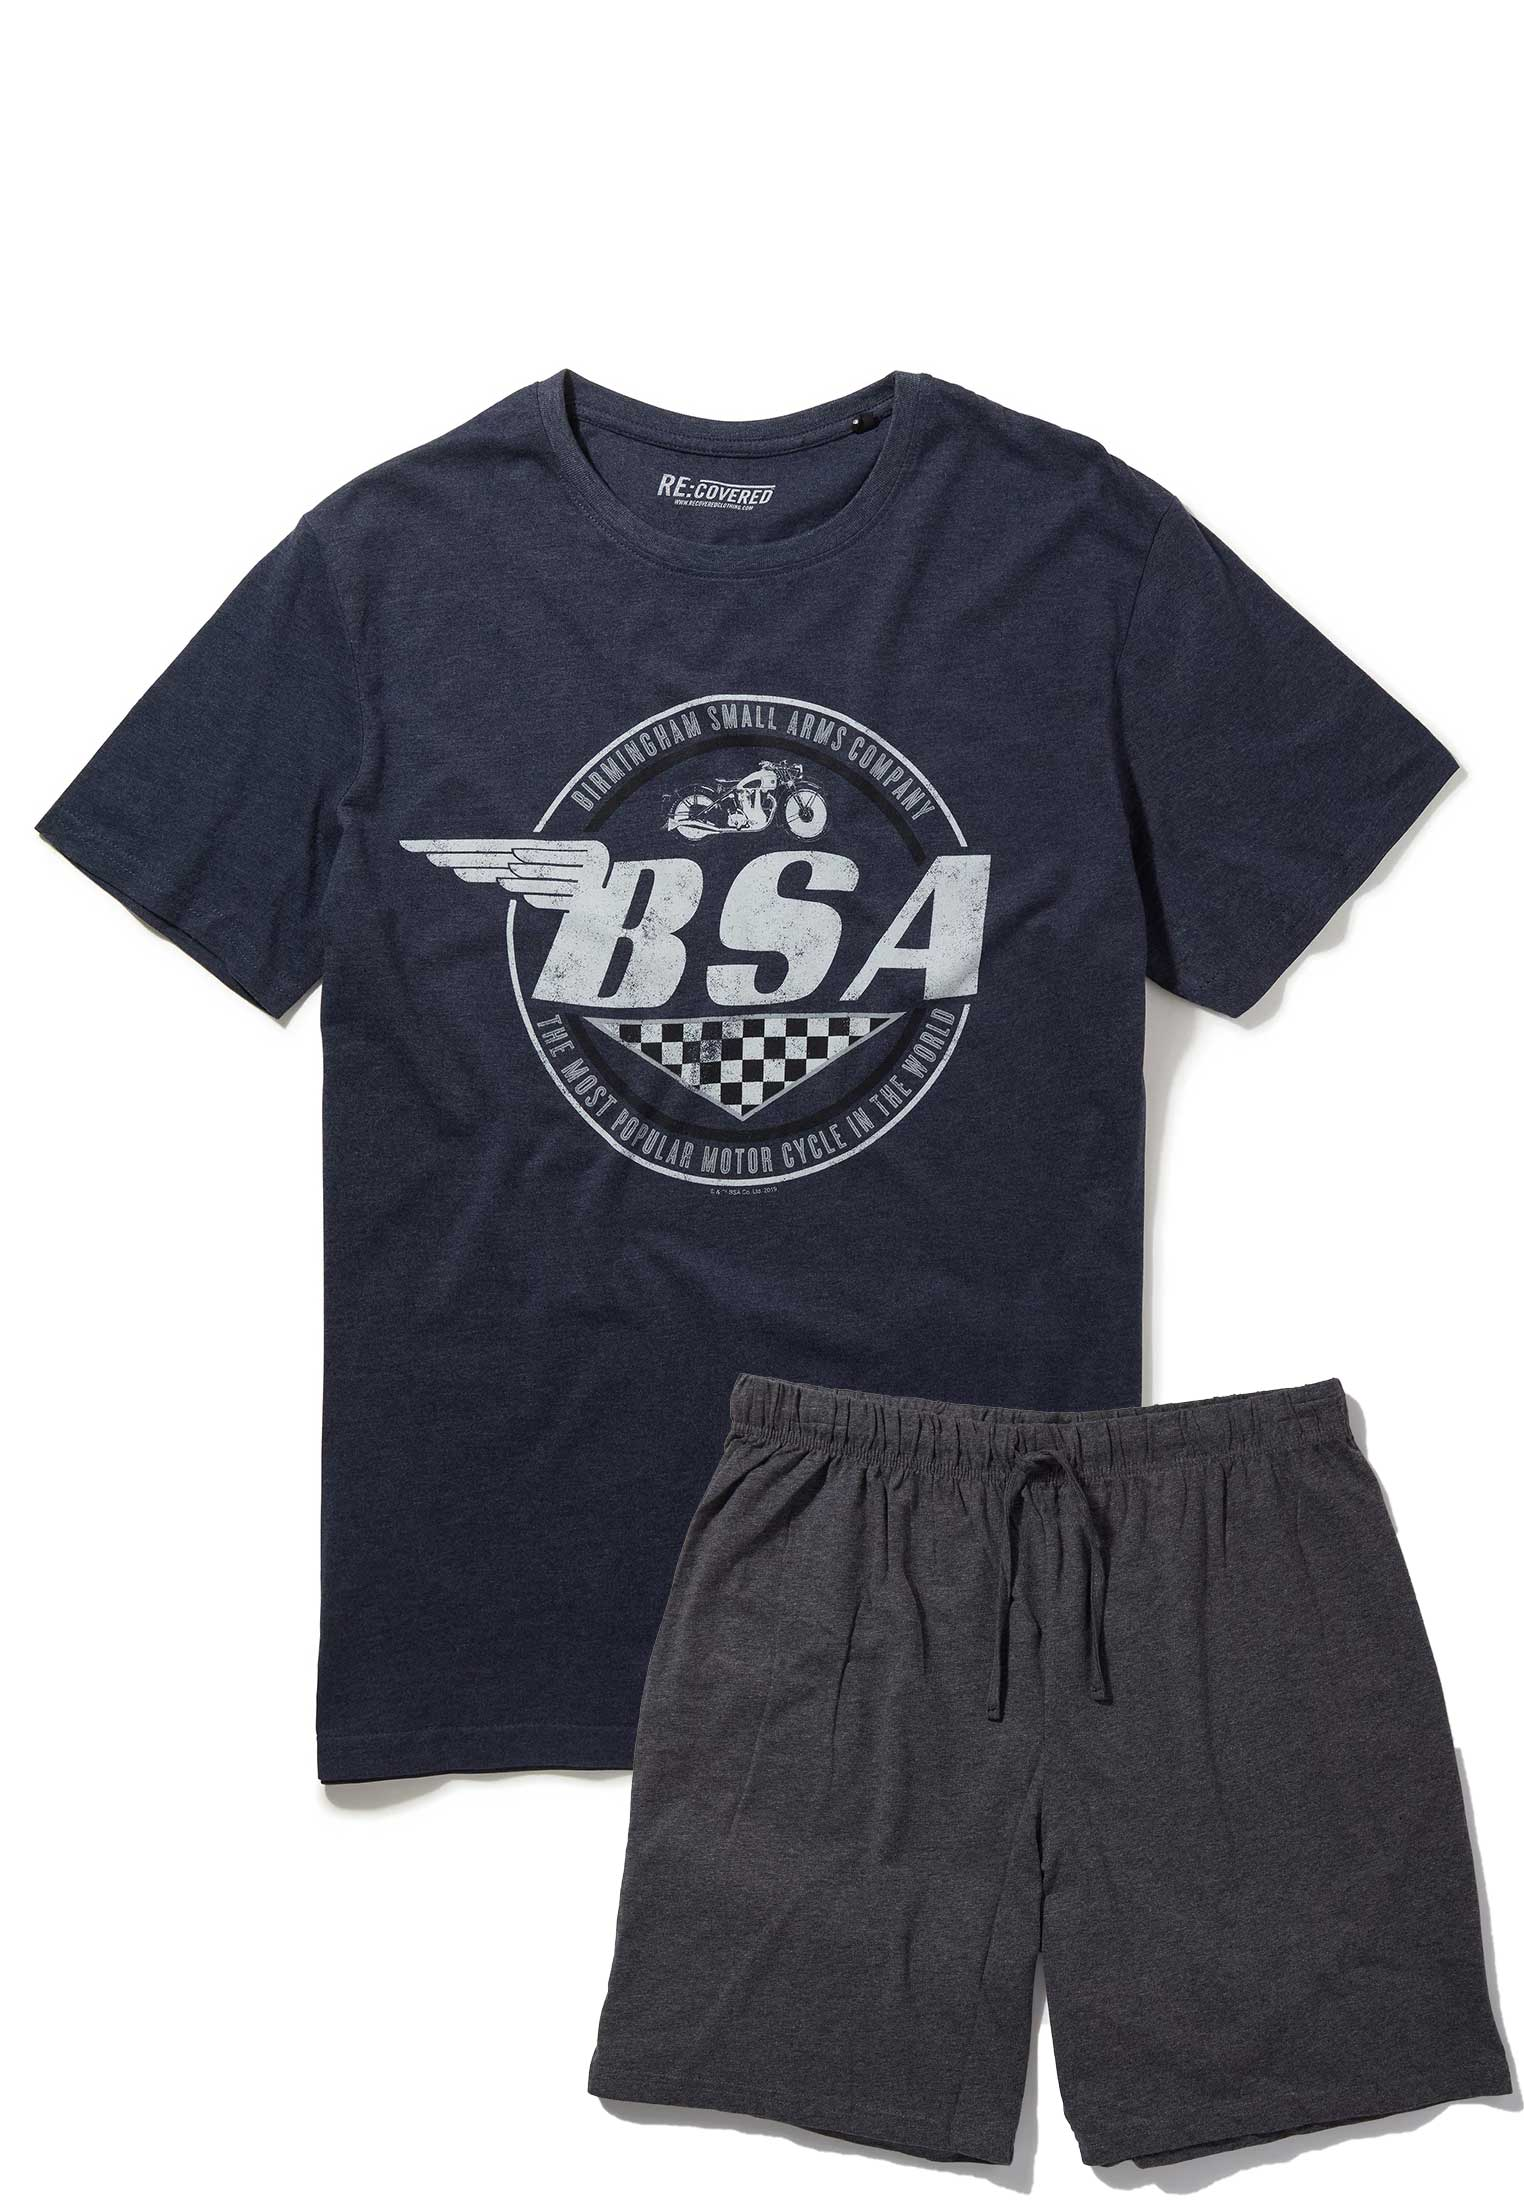 BSA Motorbike Wings Logo Navy and Charcoal Pyjama Set by Re:Covered